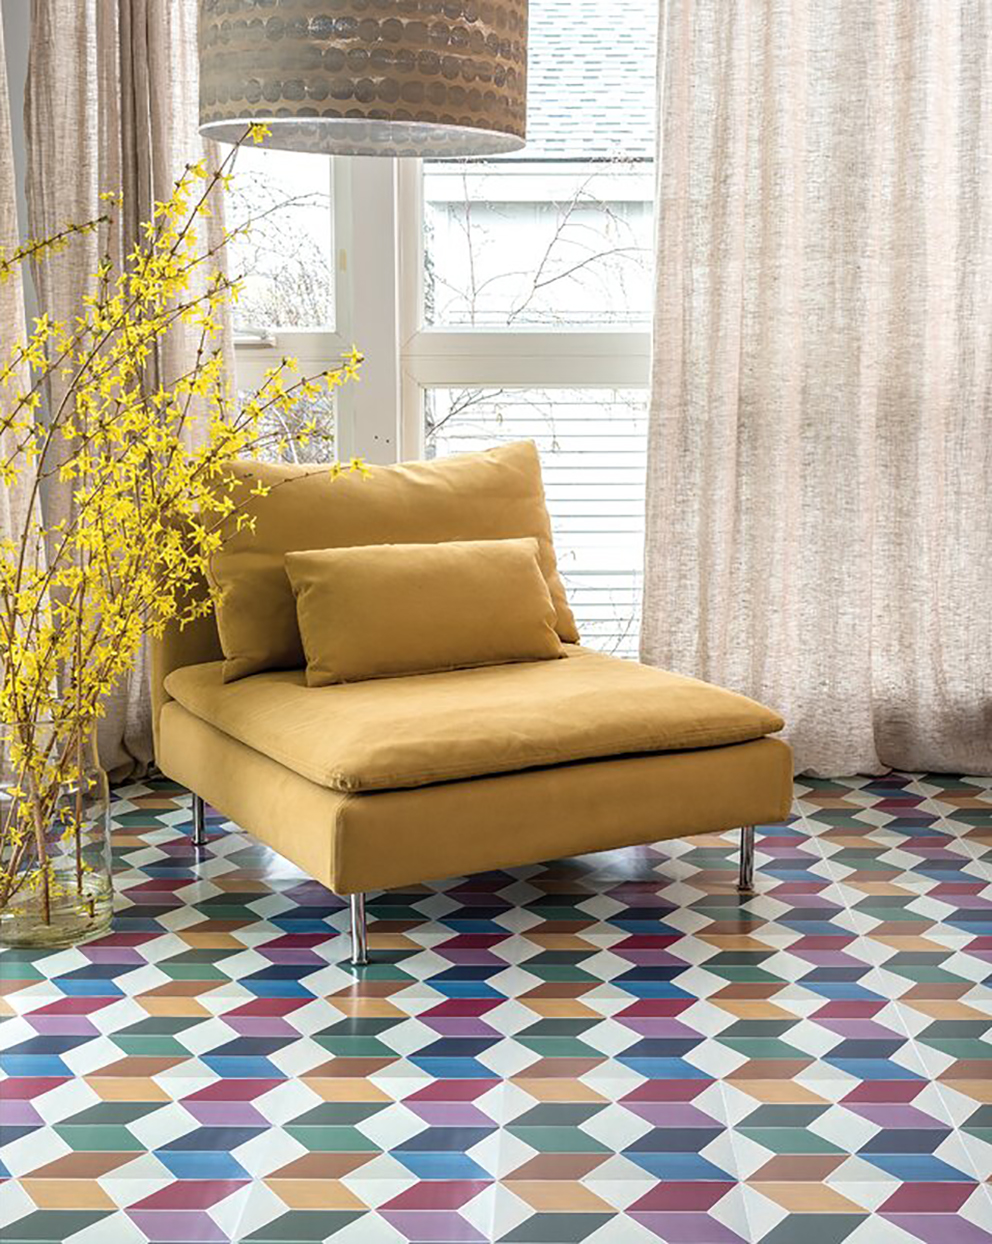 multicolored peel and stick tile floors with yellow chair and plant